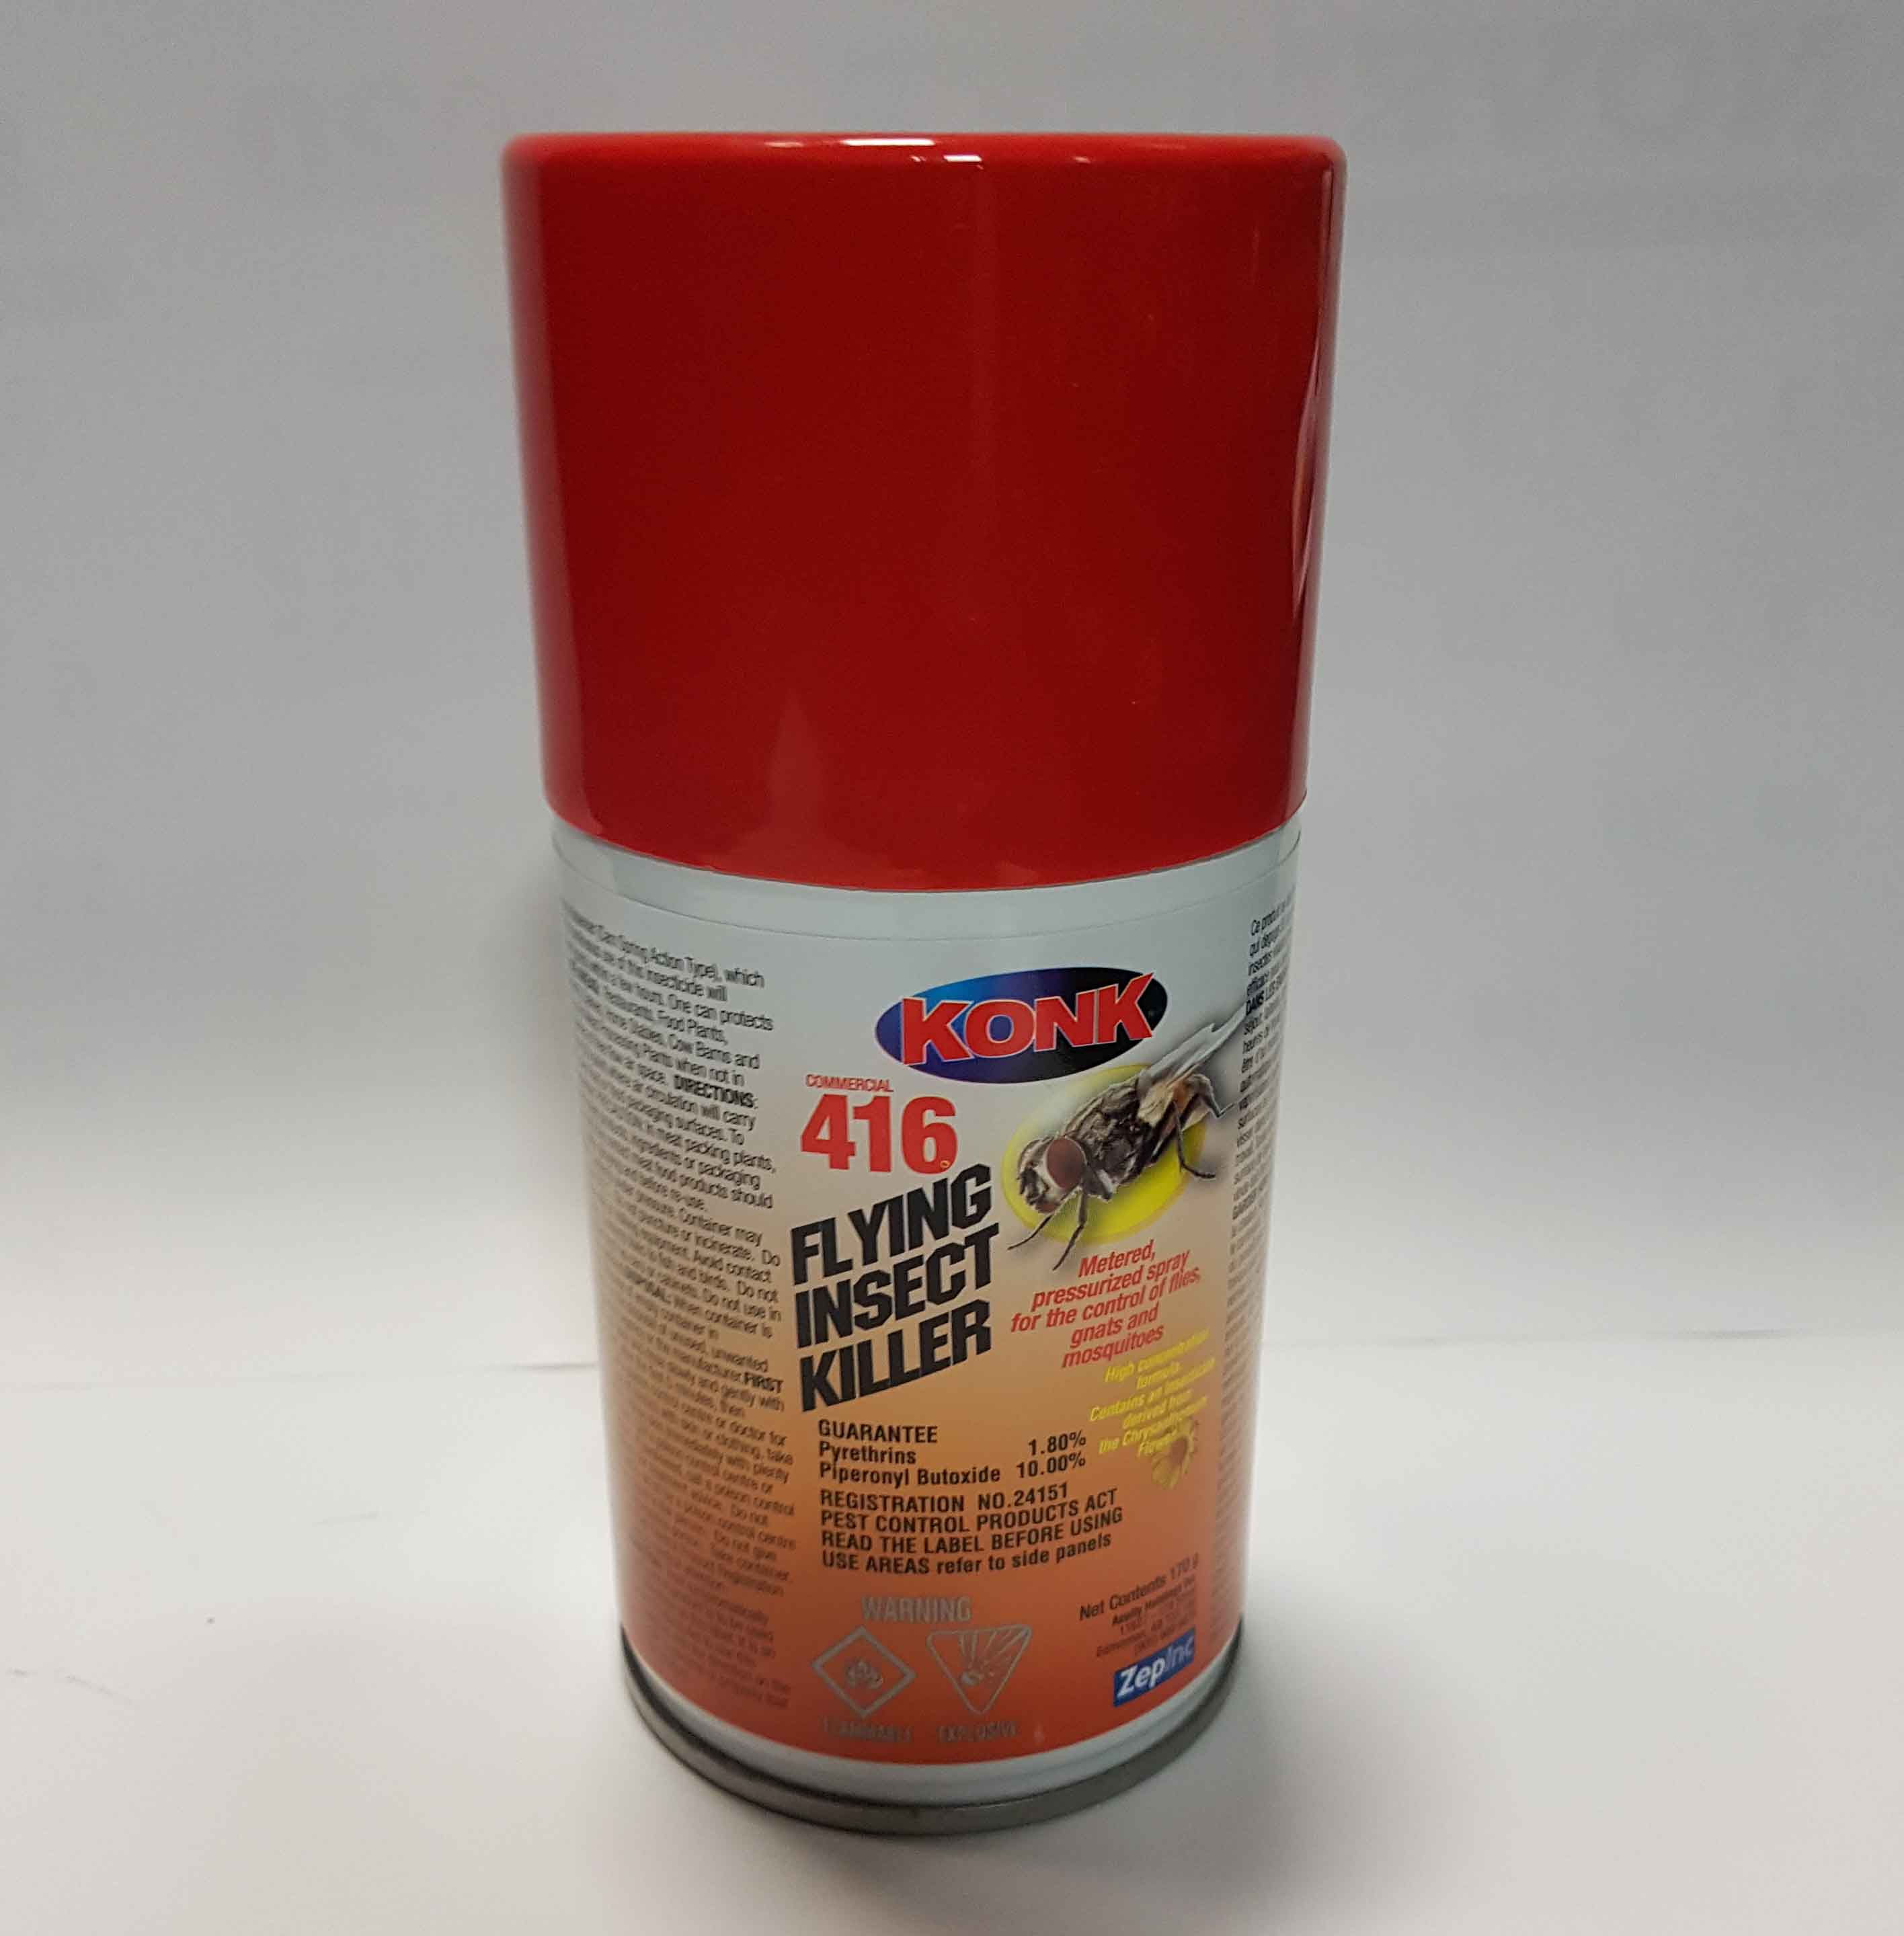 KONK 416 Flying Insect Killer